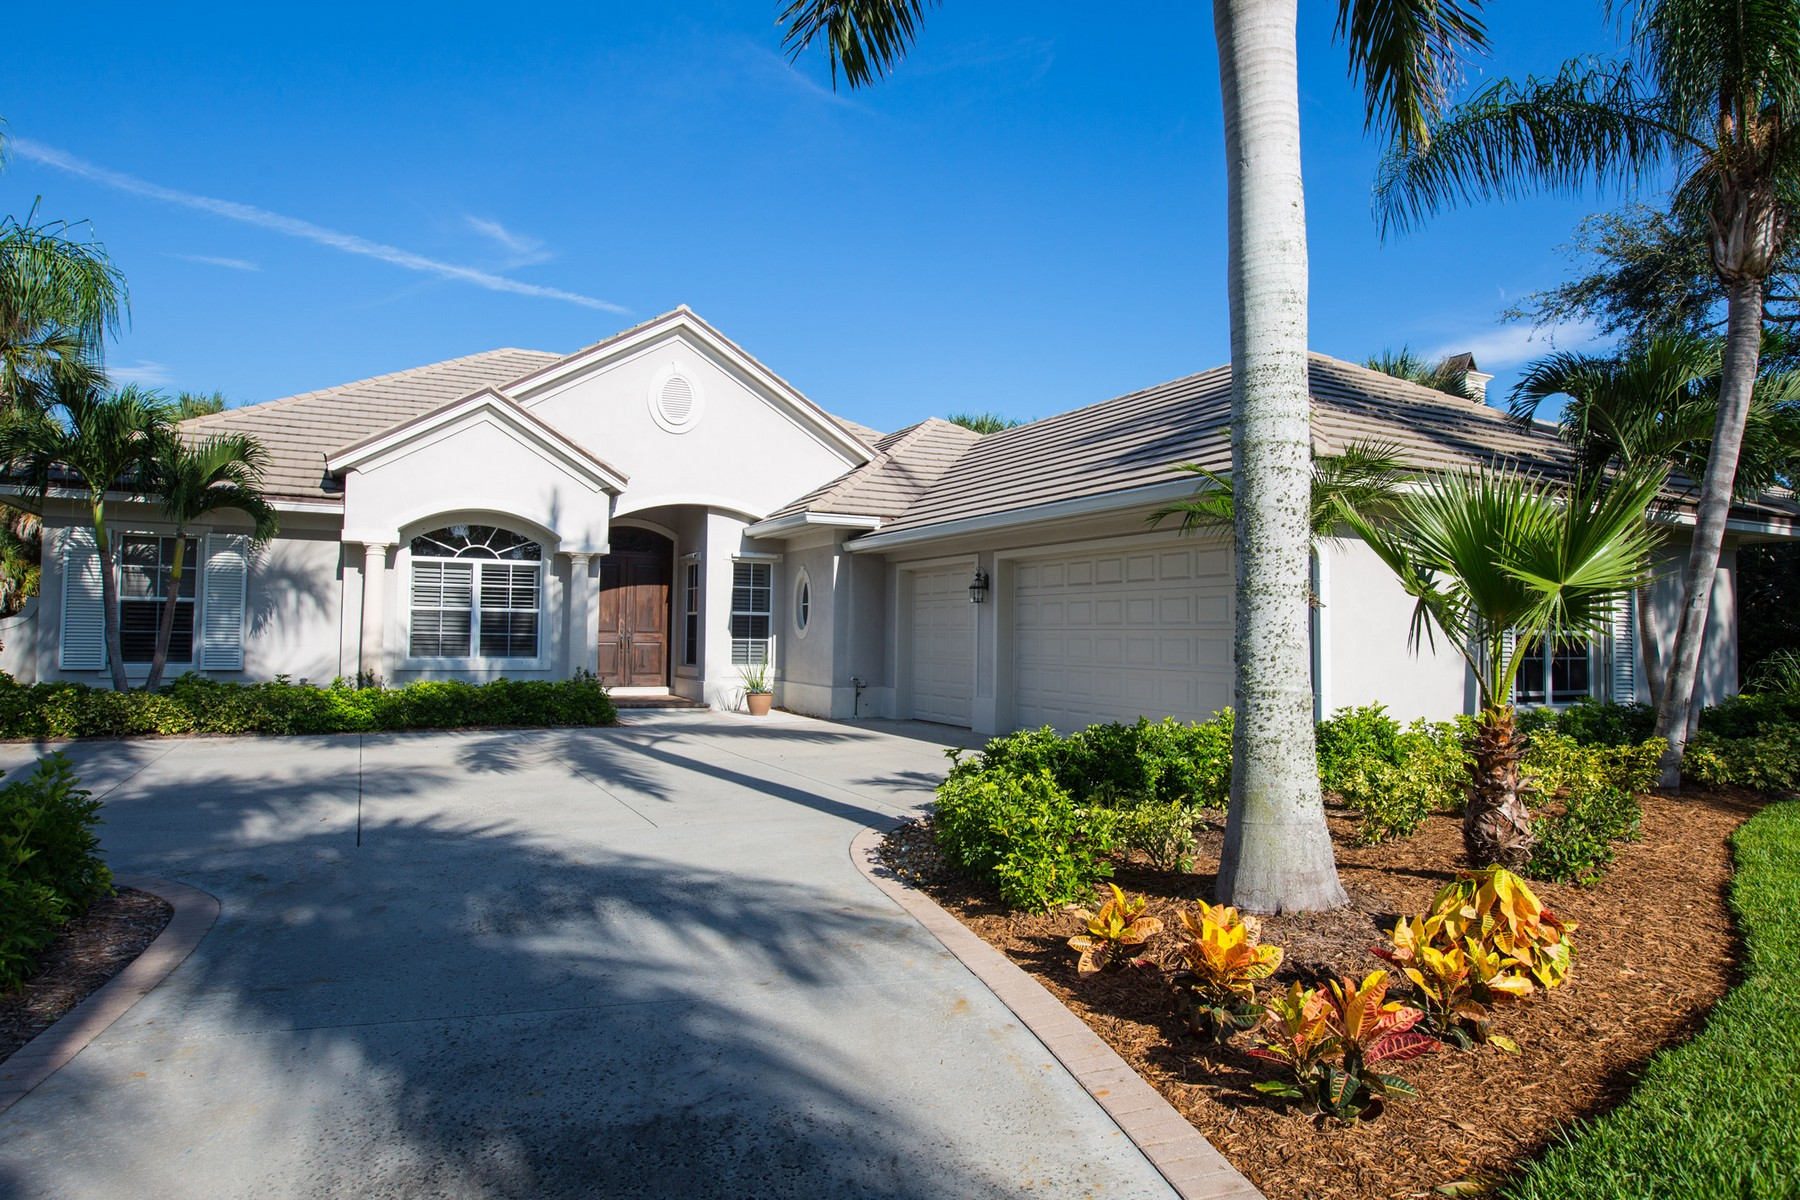 Single Family Home for Sale at Orchid Island Beach Club 407 Indies Dr Vero Beach, Florida, 32963 United States